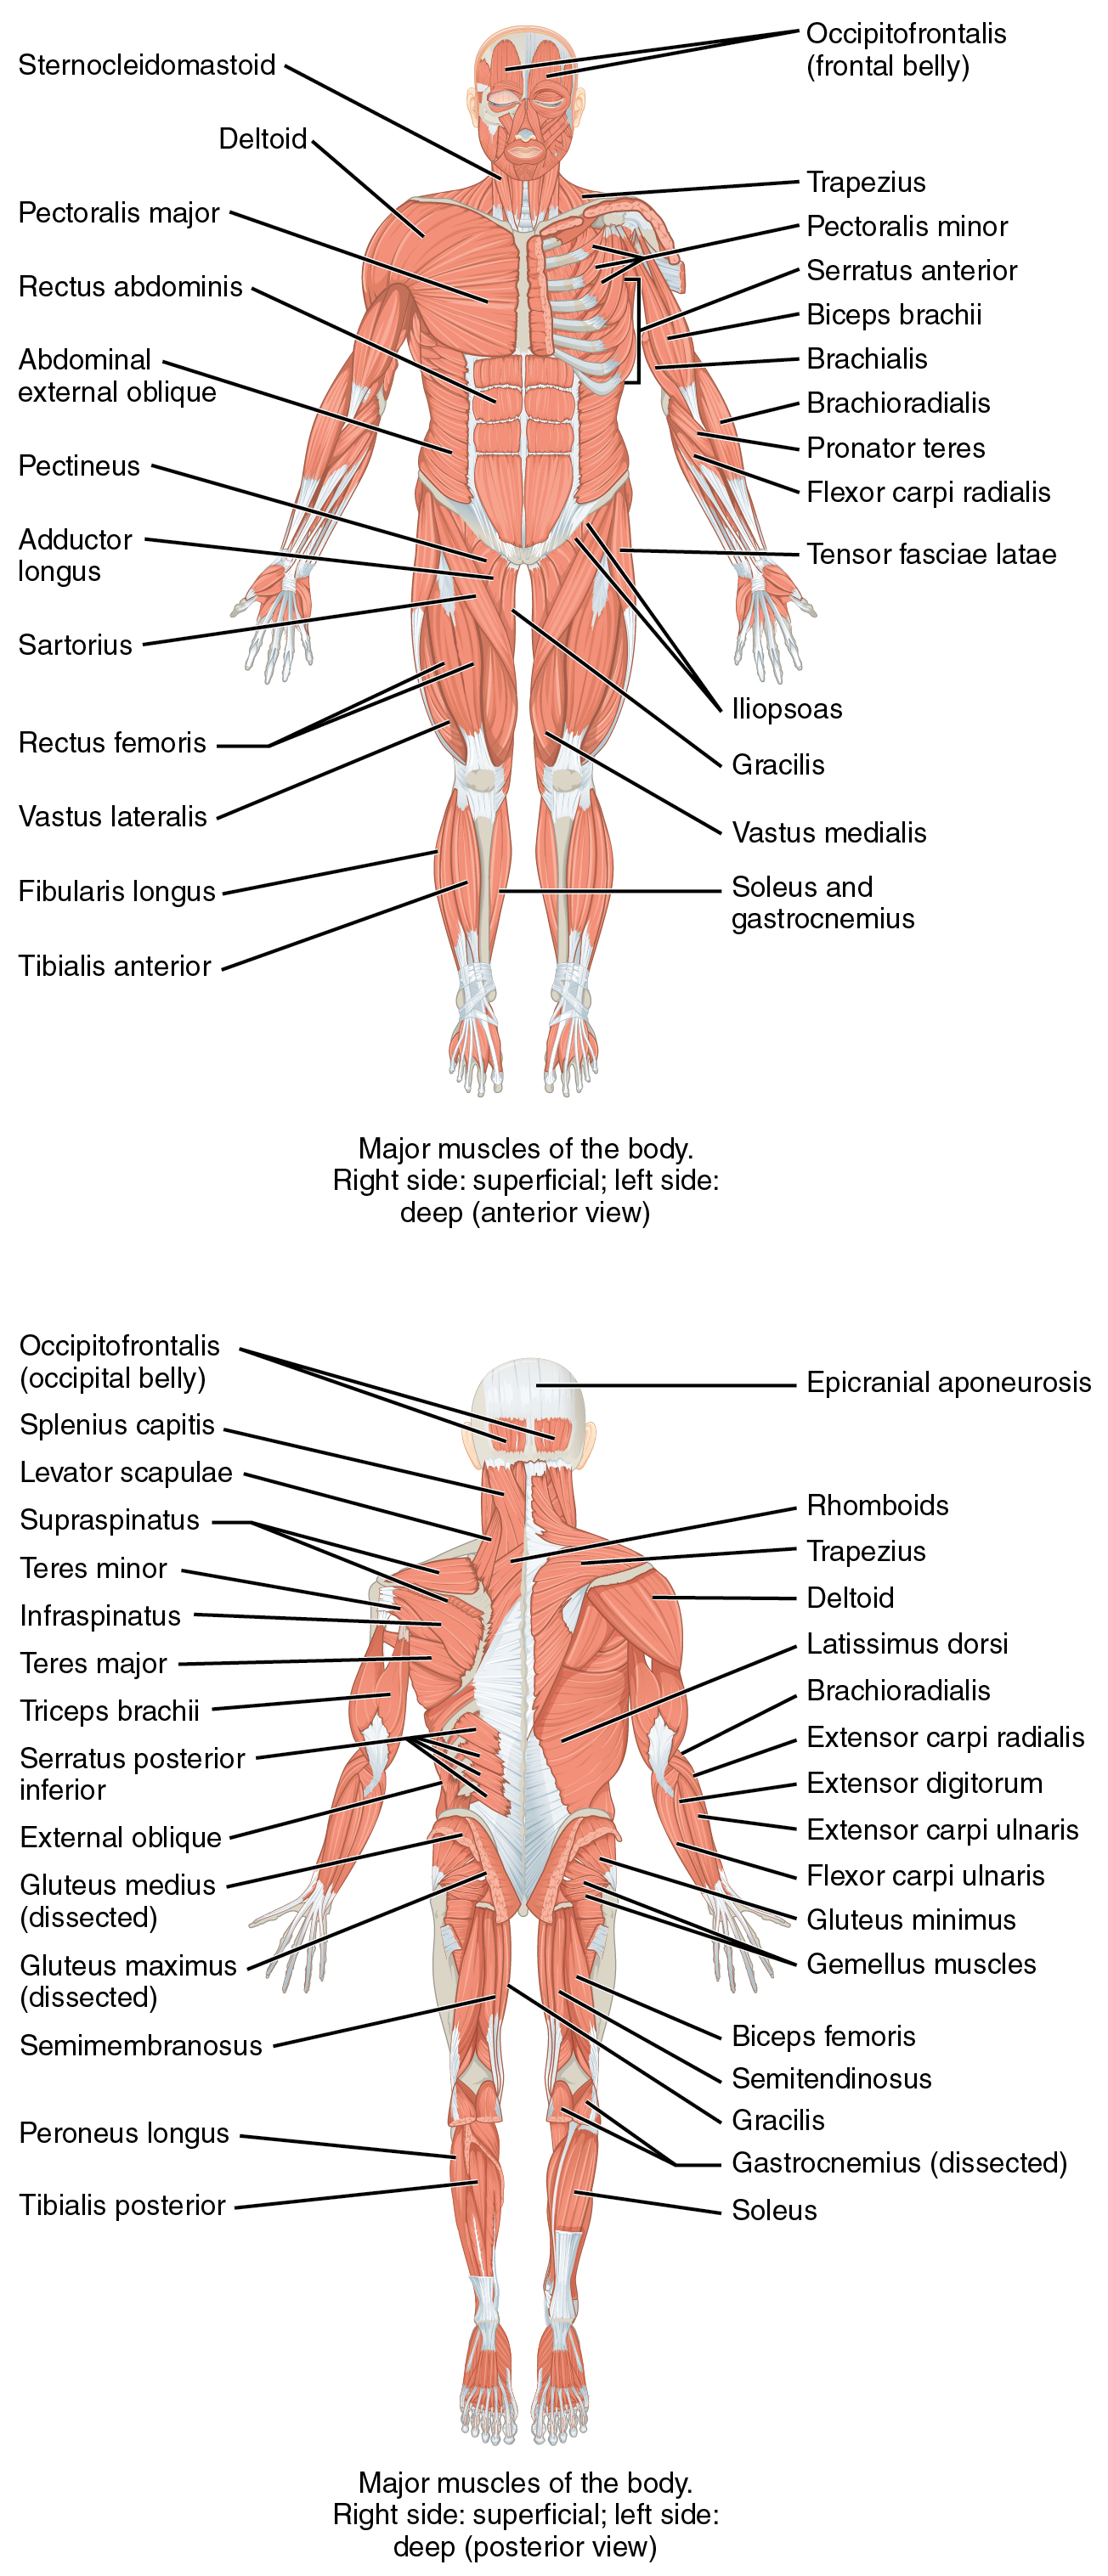 naming skeletal muscles · anatomy and physiology, Muscles